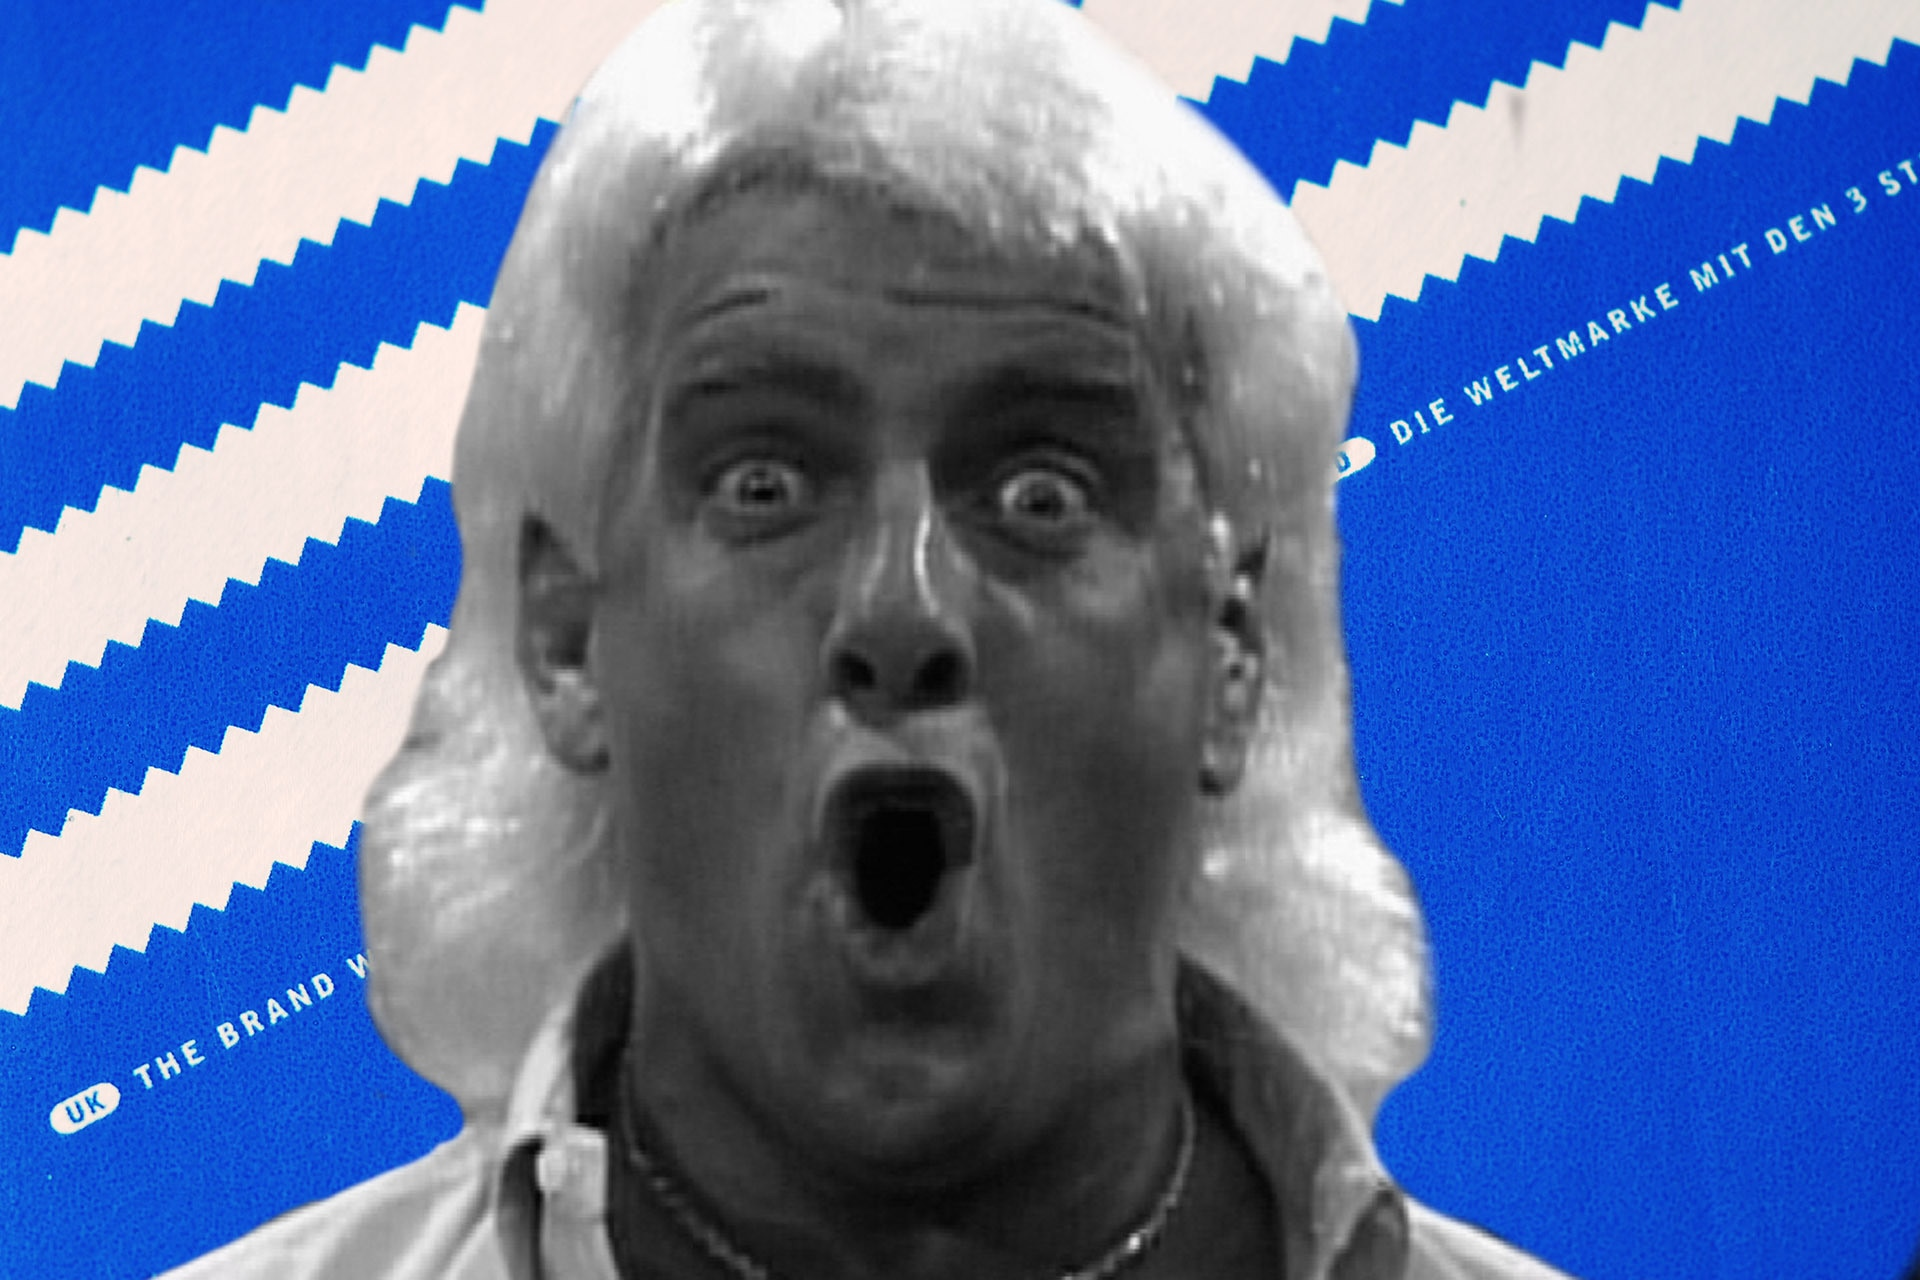 Ric Flair Has Signed With Adidas In The Most Out-There Sneaker Deal Of The Year